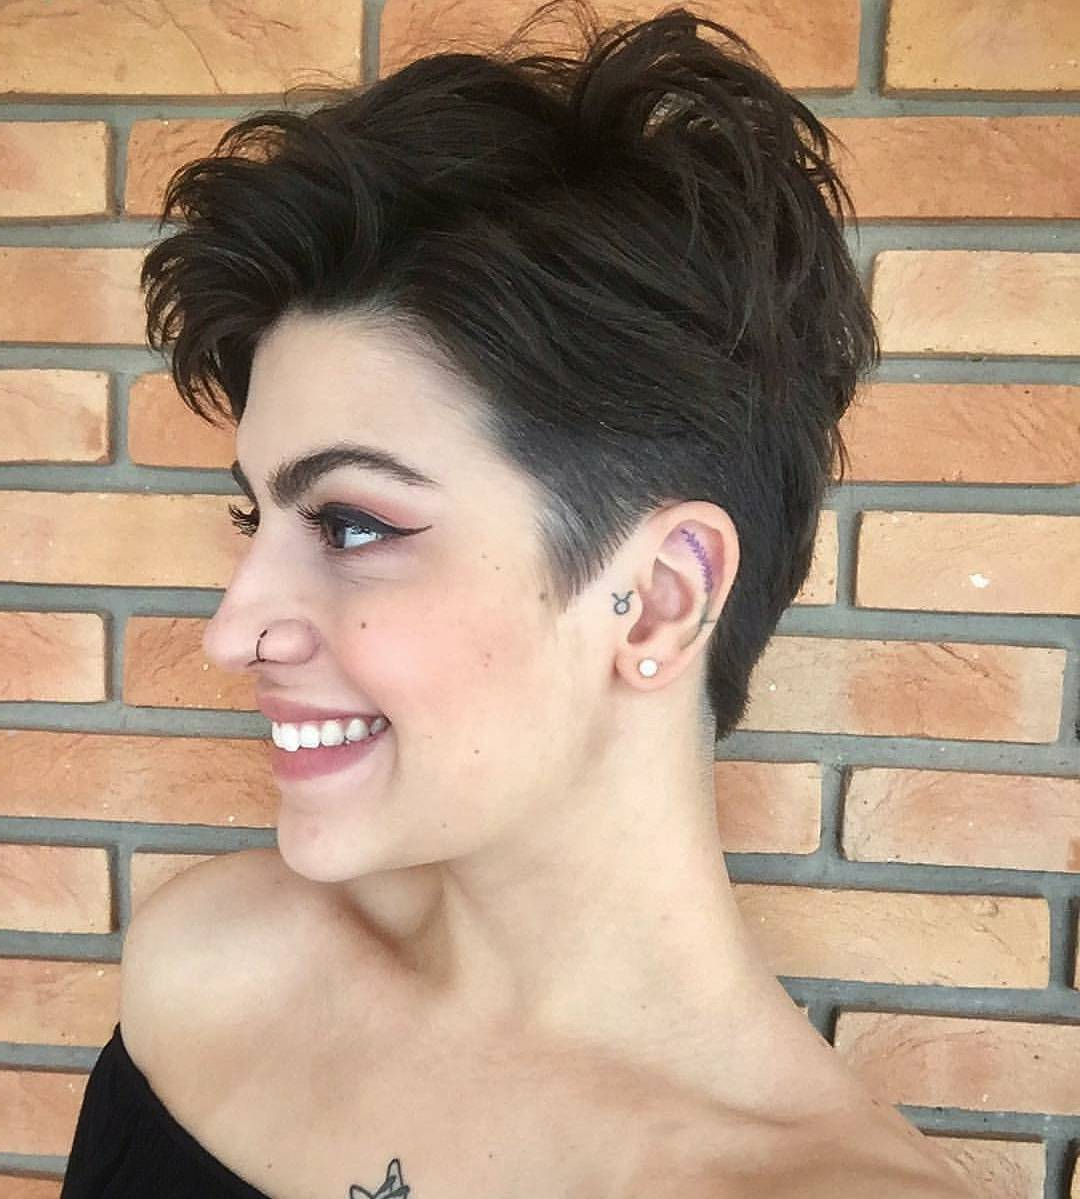 10 Edgy Pixie Haircuts For Women, 2018 Best Short Hairstyles In Sporty Short Haircuts (View 1 of 25)